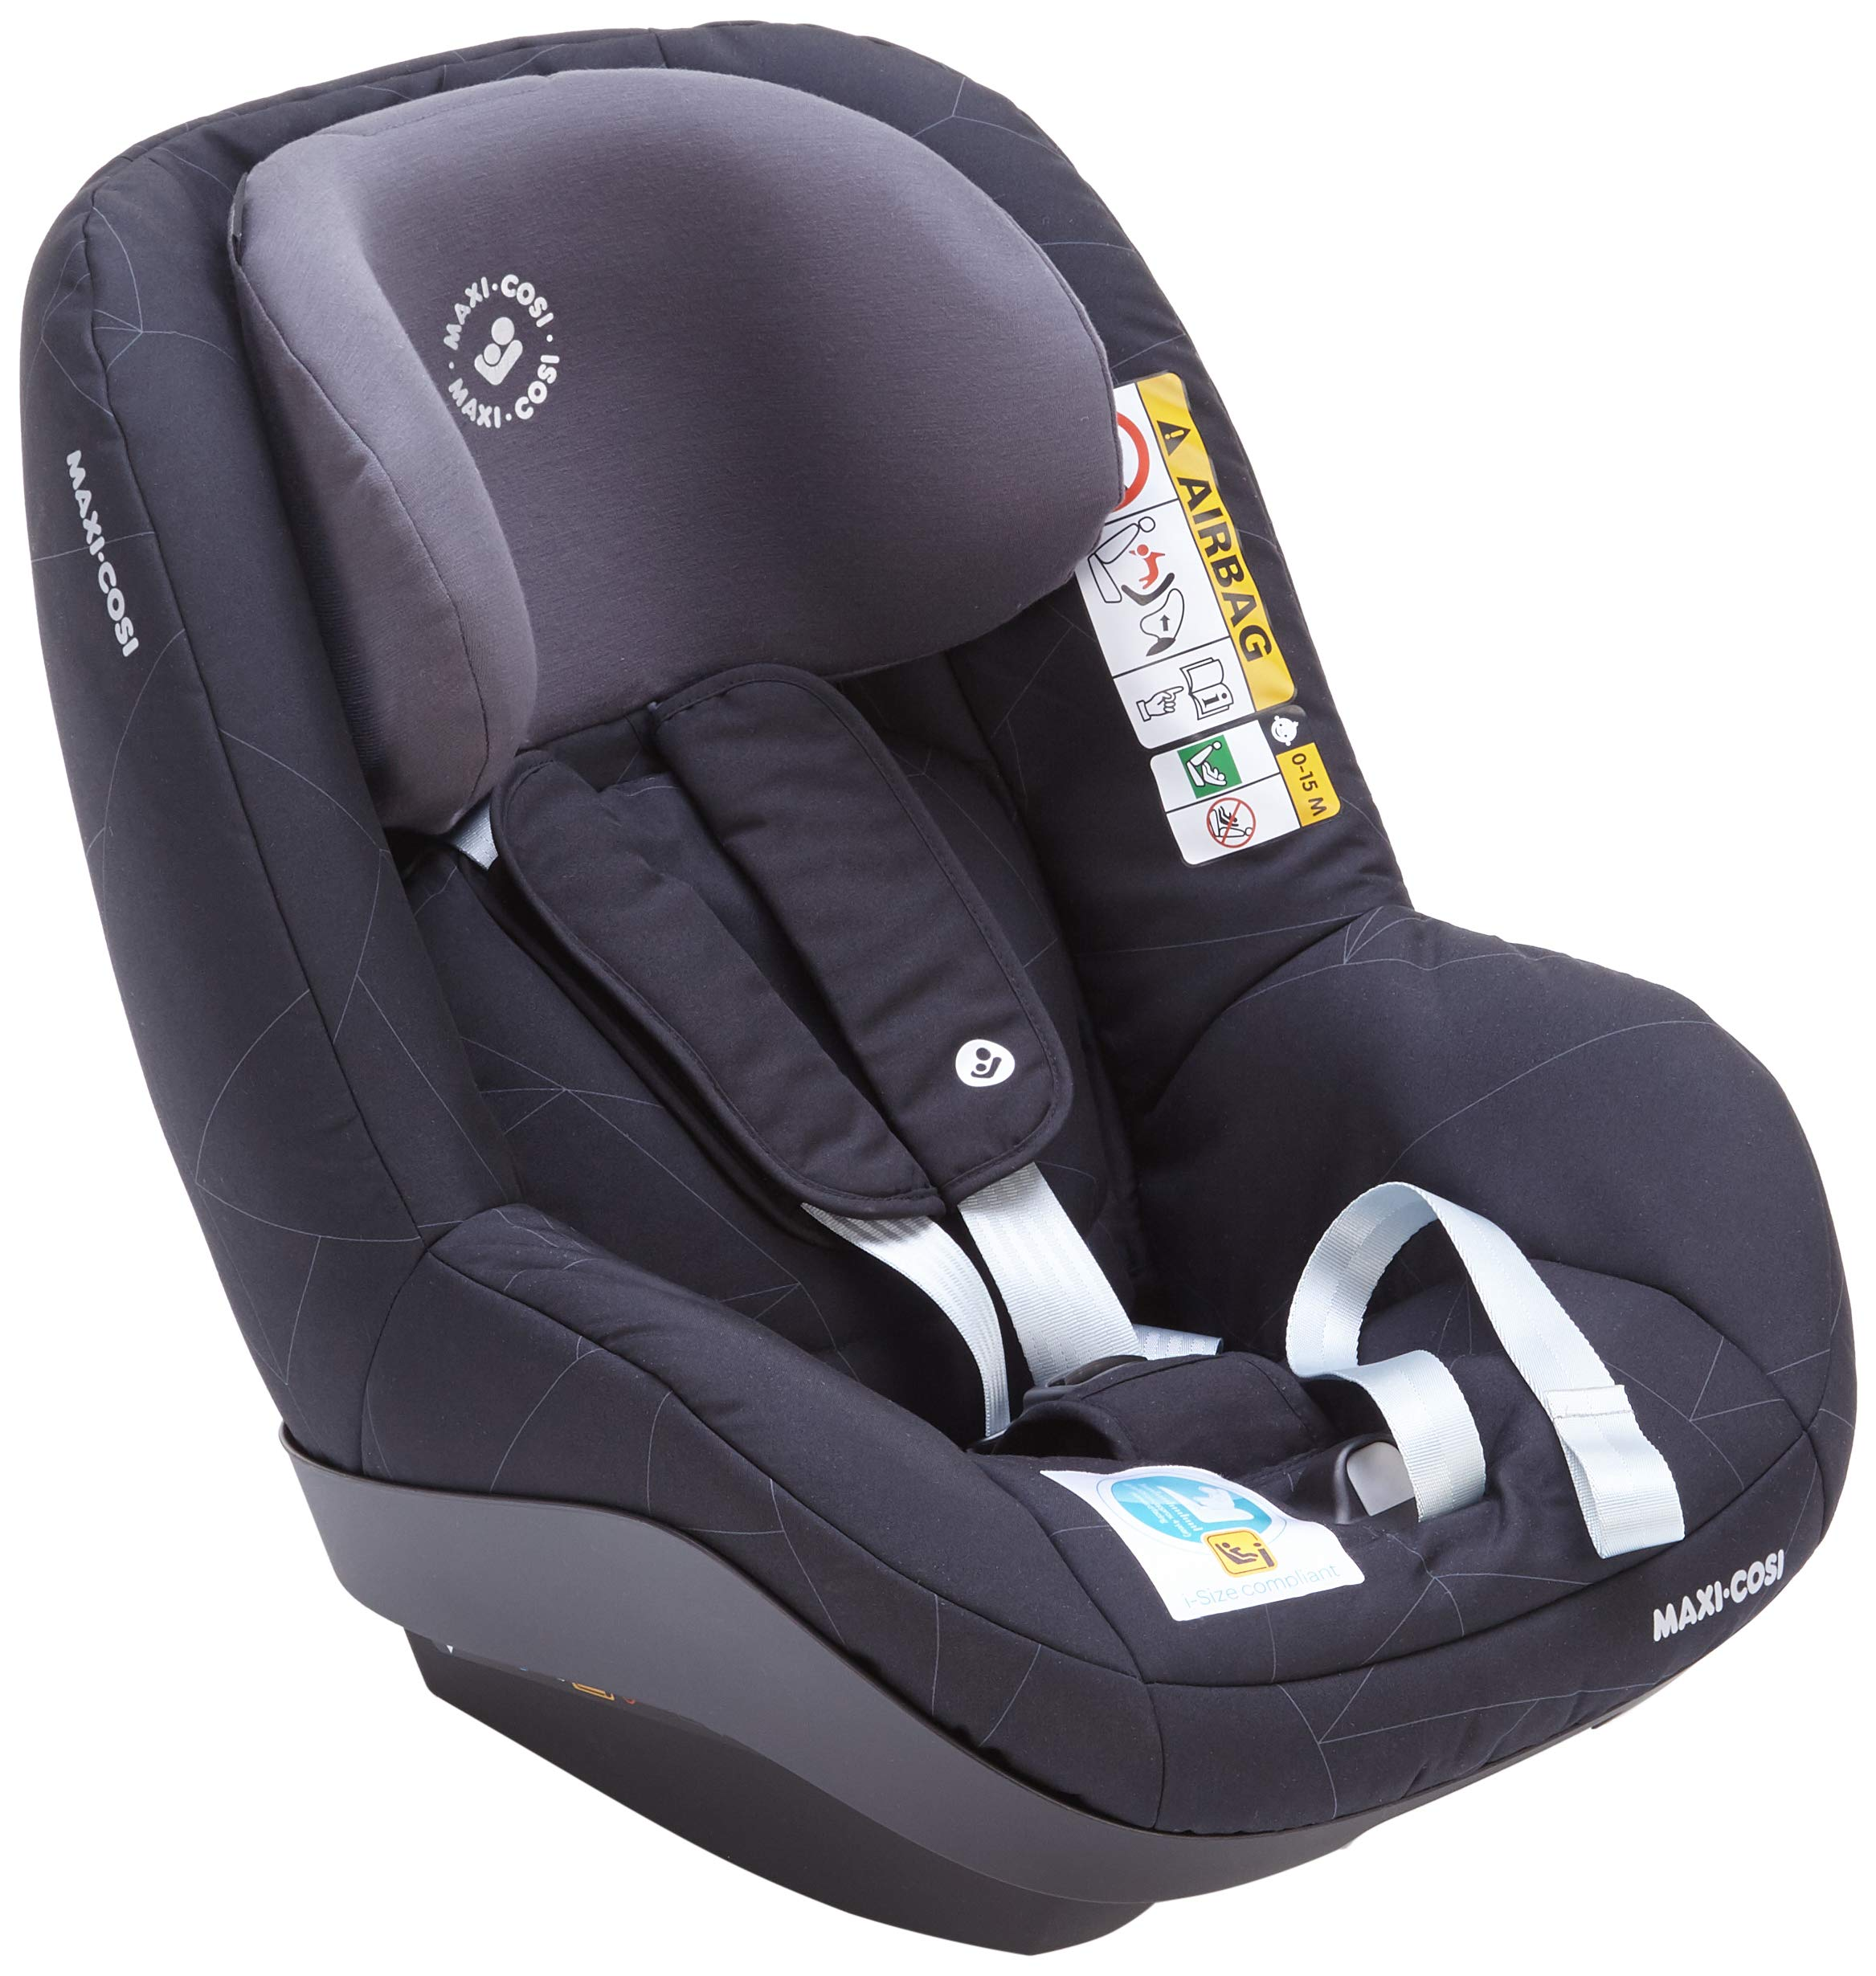 Maxi-Cosi Pearl Smart i-Size Toddler Car Seat, 6 Months - 4 Years, 9-18 kg, 67 - 105 cm, Black Diamond Maxi-Cosi Car seat for toddlers, suitable from 6 months to 4 years (9 - 18 kg, 67 - 105 cm) Must be installed in combination with family fix one i-size base Harness and headrest of this car seat adjust simultaneously for easy adjustment when child grows 1